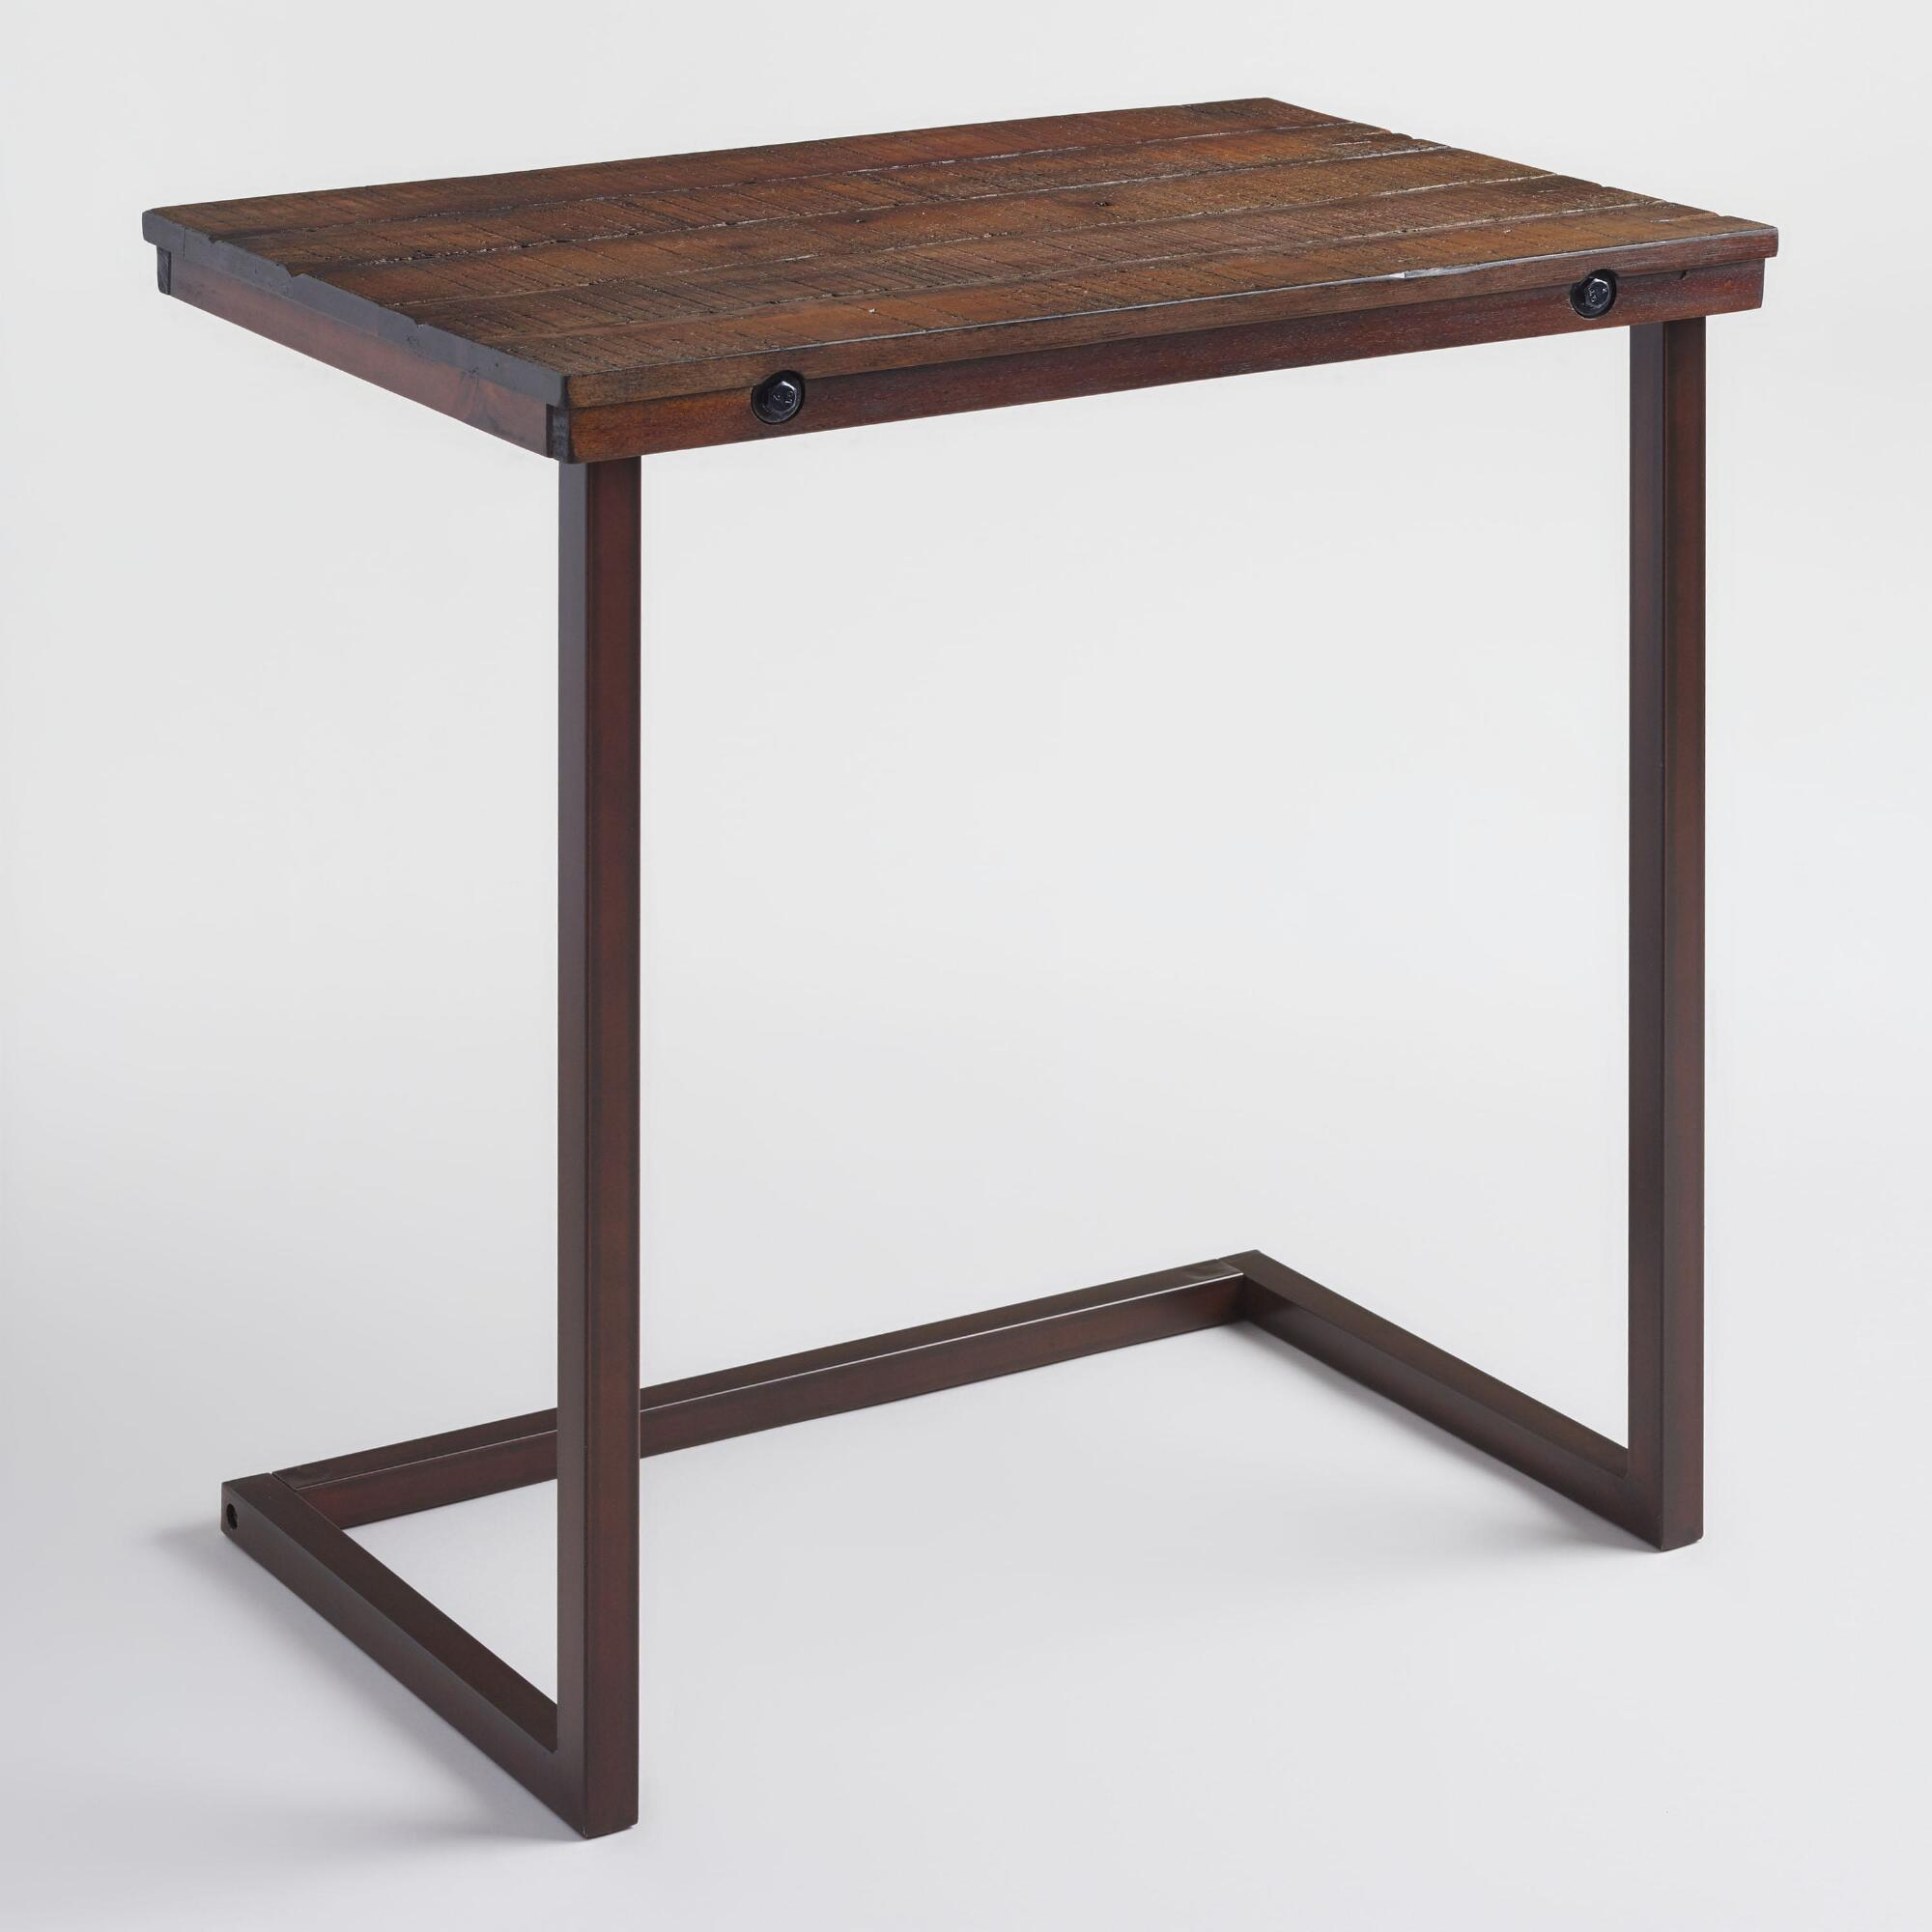 small space coffee side tables world market iipsrv fcgi clear acrylic zella accent table only oversized wood and metal laptop dark blue nightstand nest mango dining green console